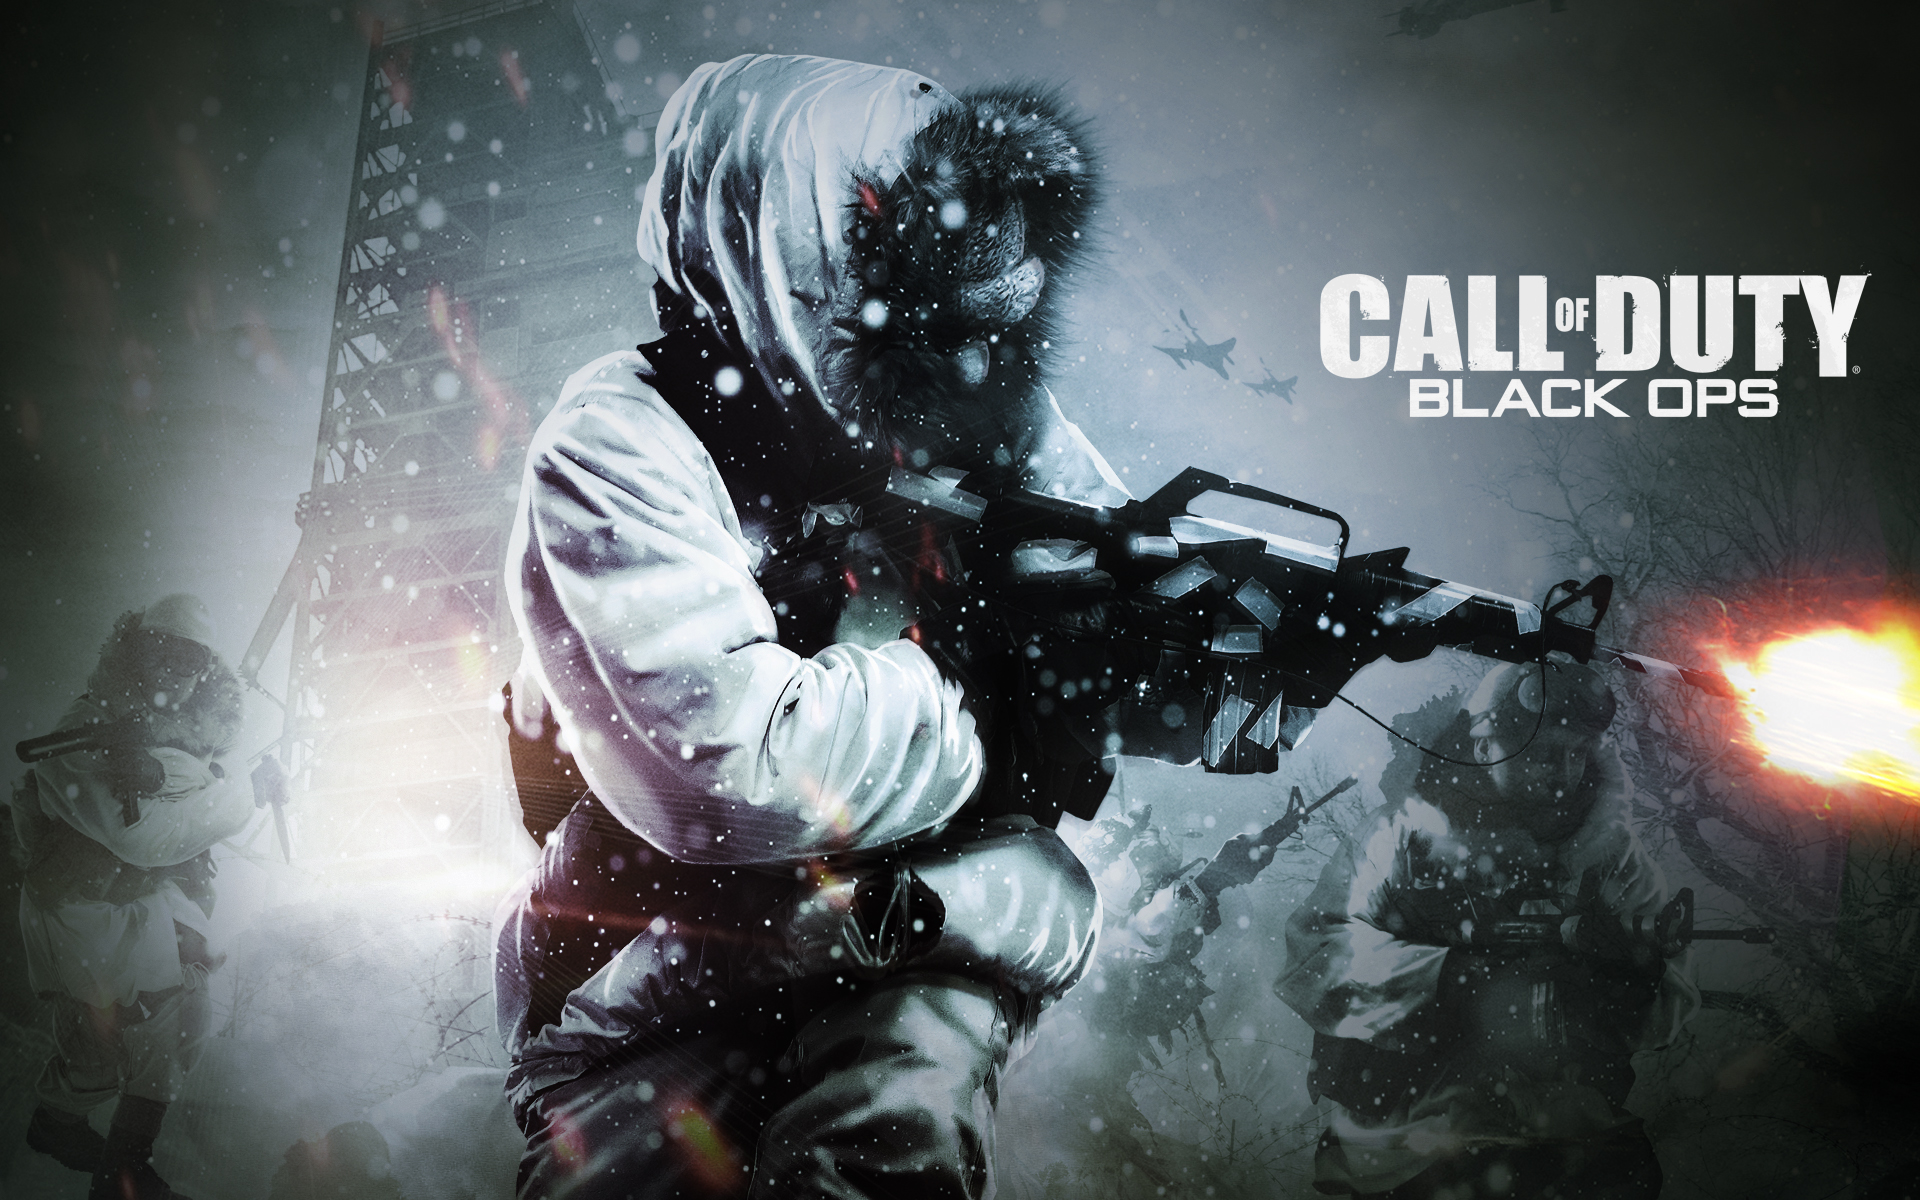 Call Of Duty Black Ops High Definition Desktop Wallpaper Your